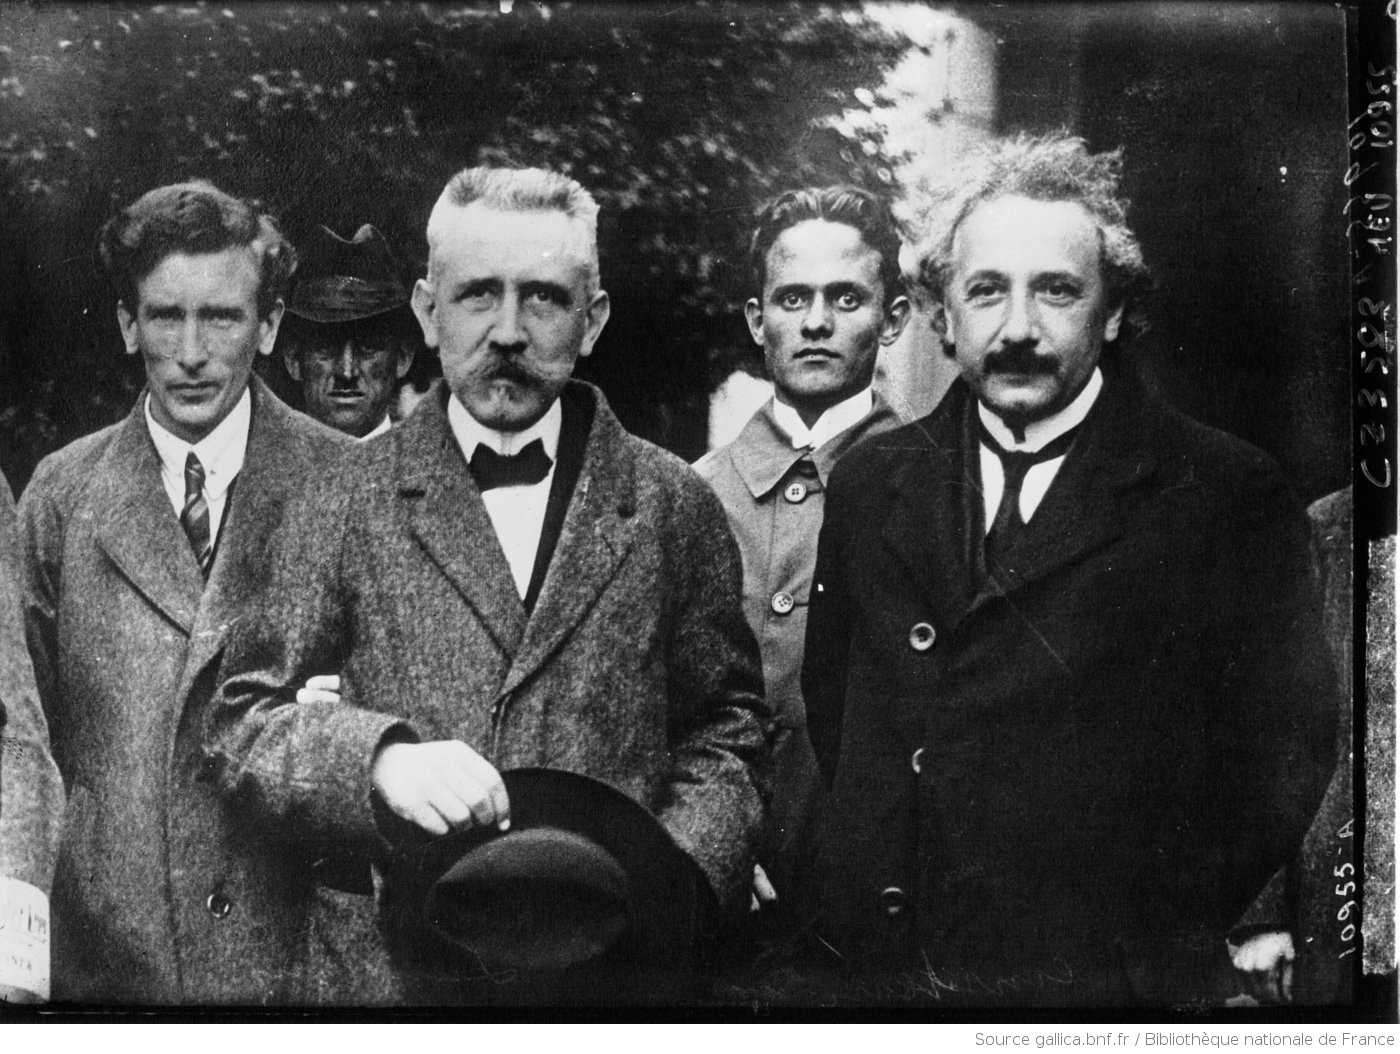 Photographie de Einstein, Professeur Langevin et R. Smith